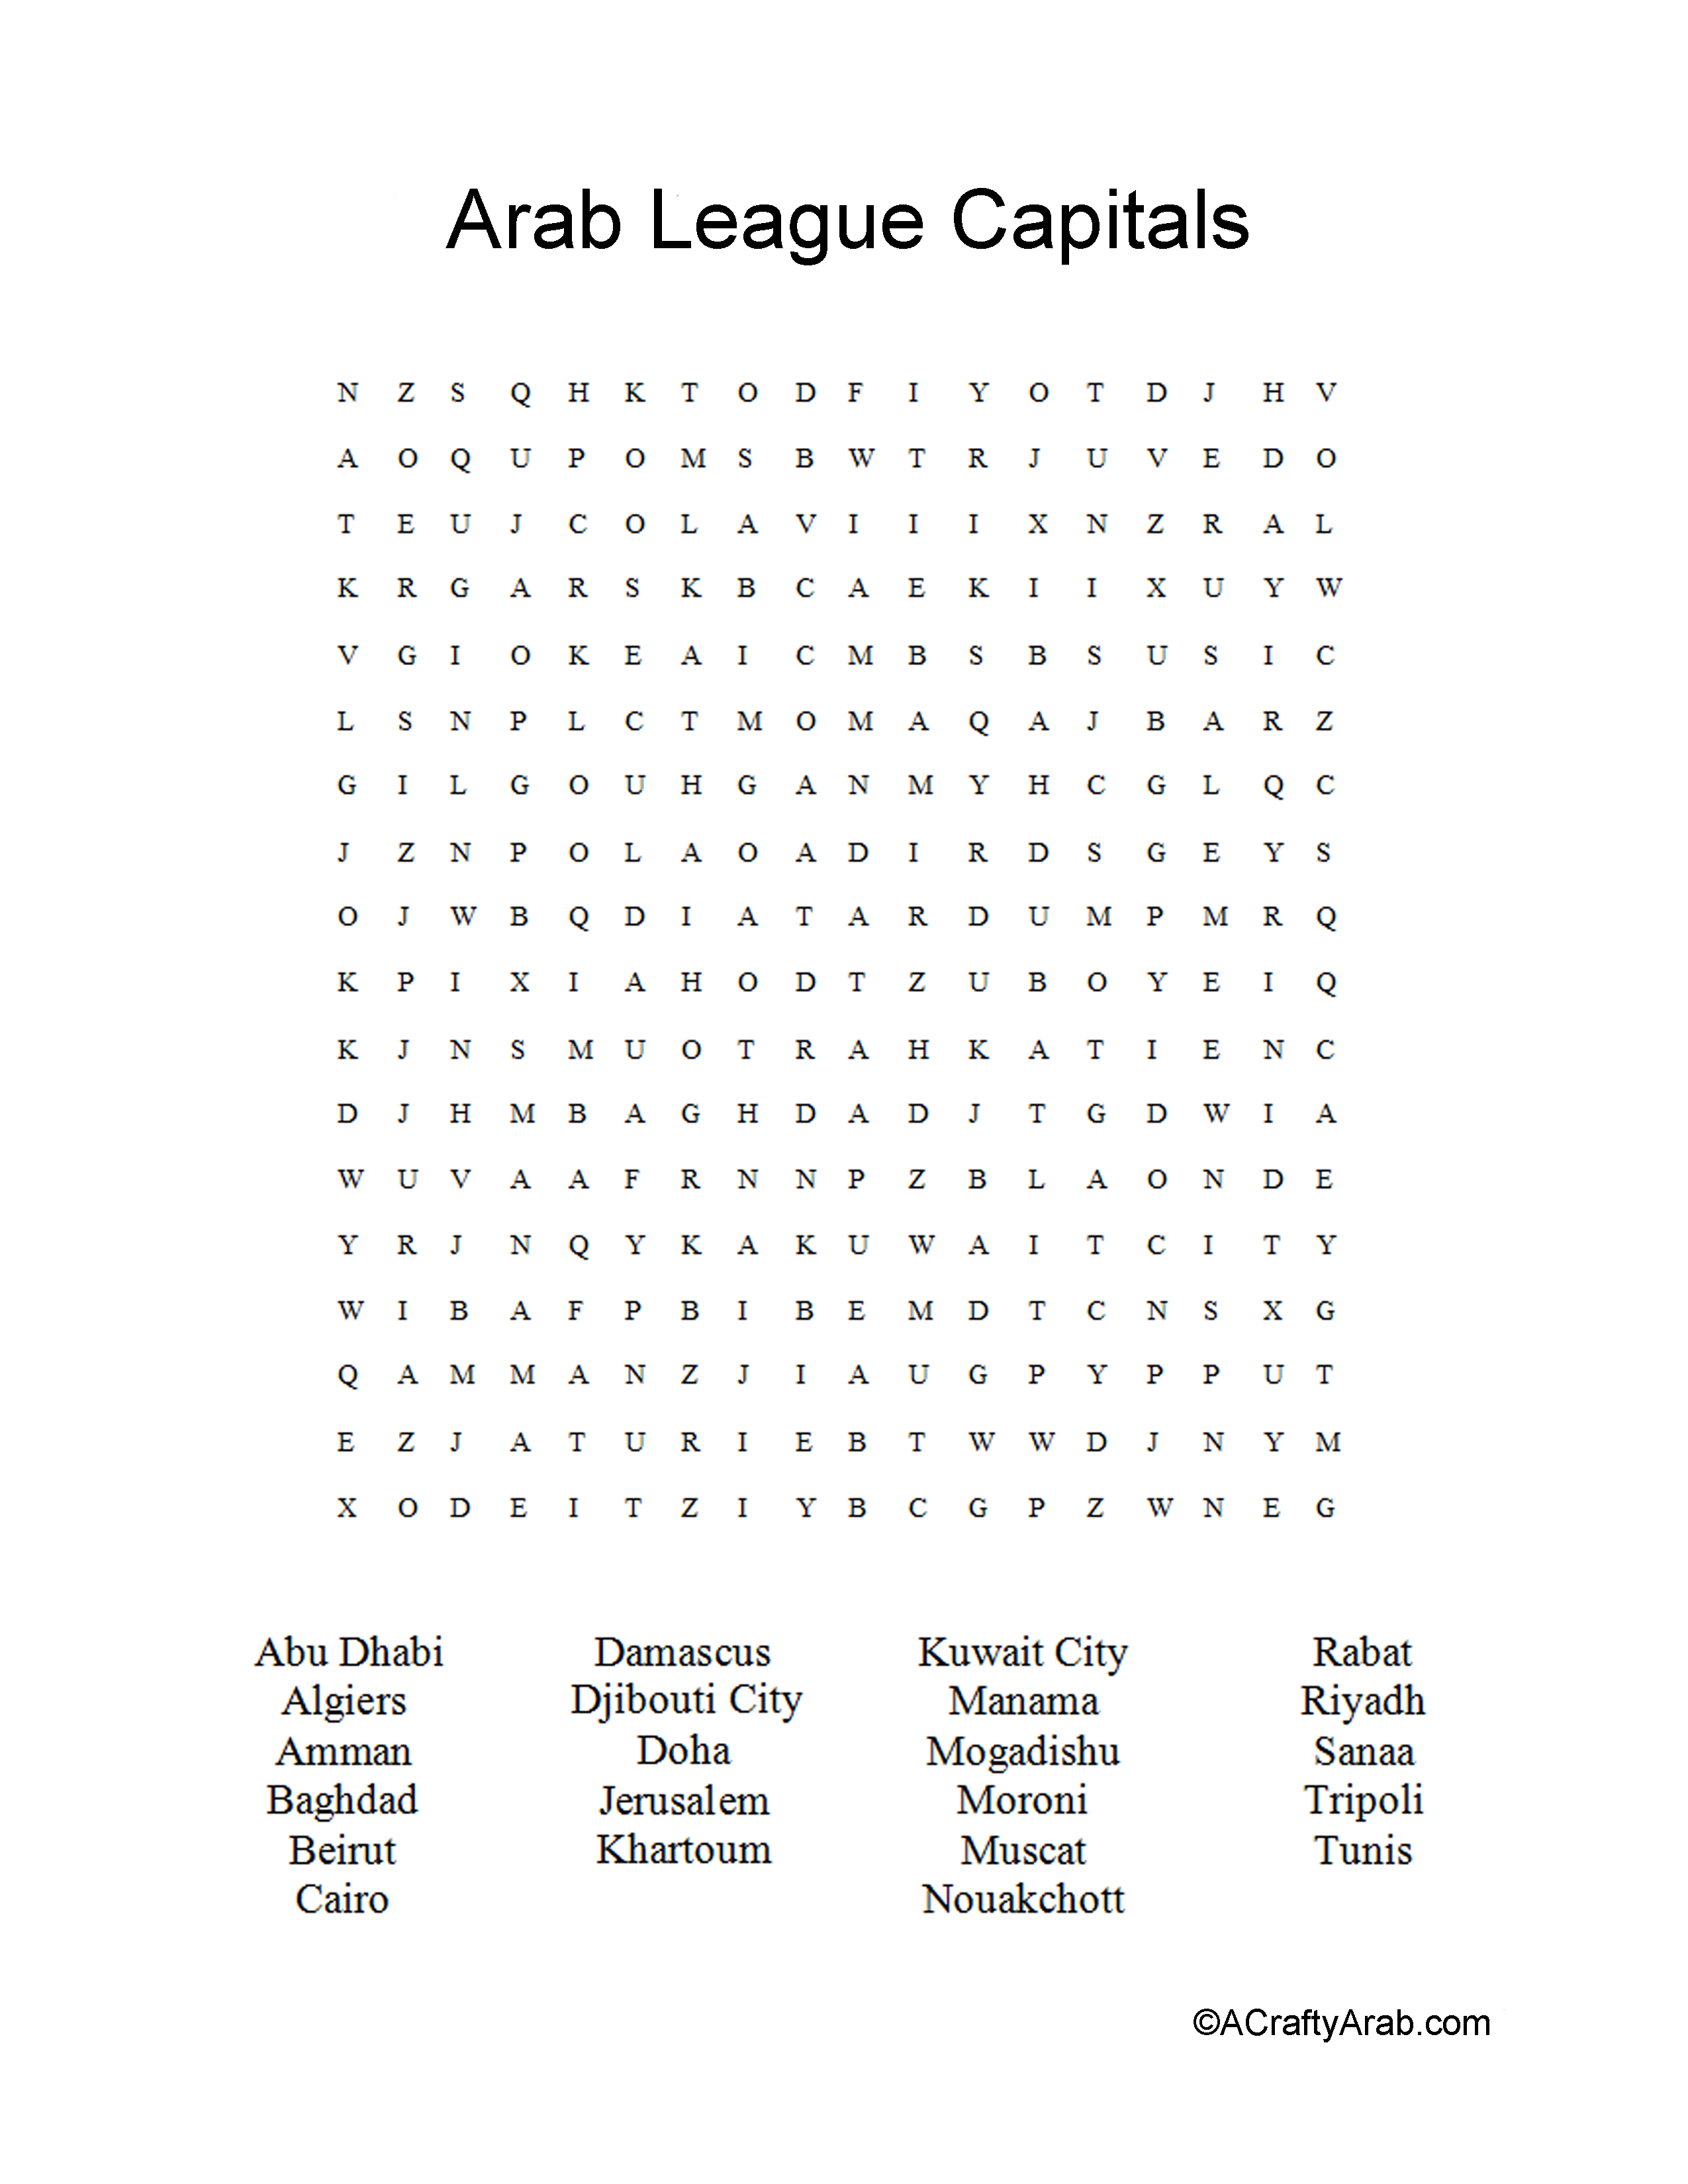 Arab League Capitals Word Search Printable